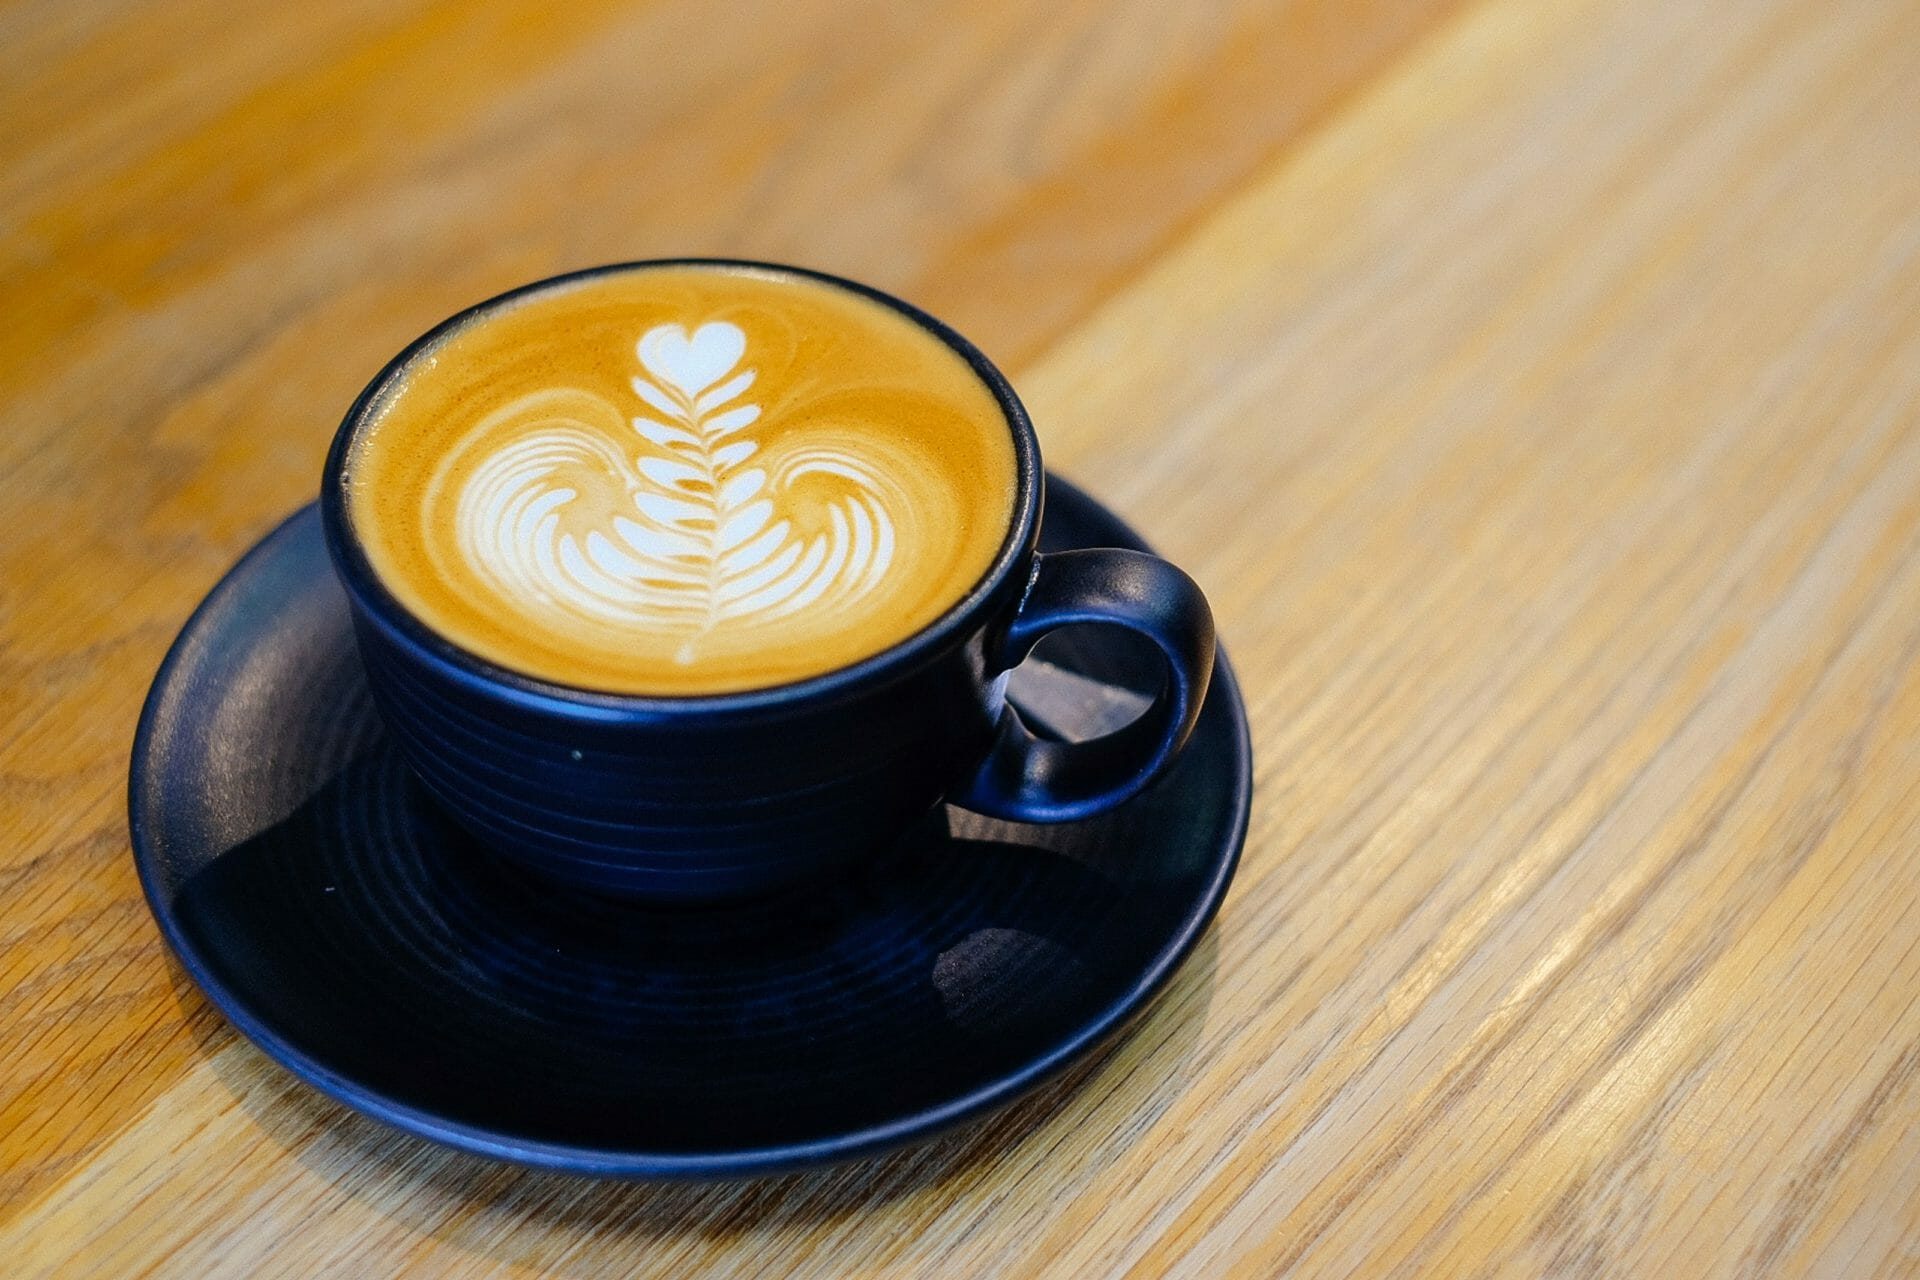 An cappuccino with decorative milk on a wooden table top at a cafe in Fitzroy, Victoria, Australia